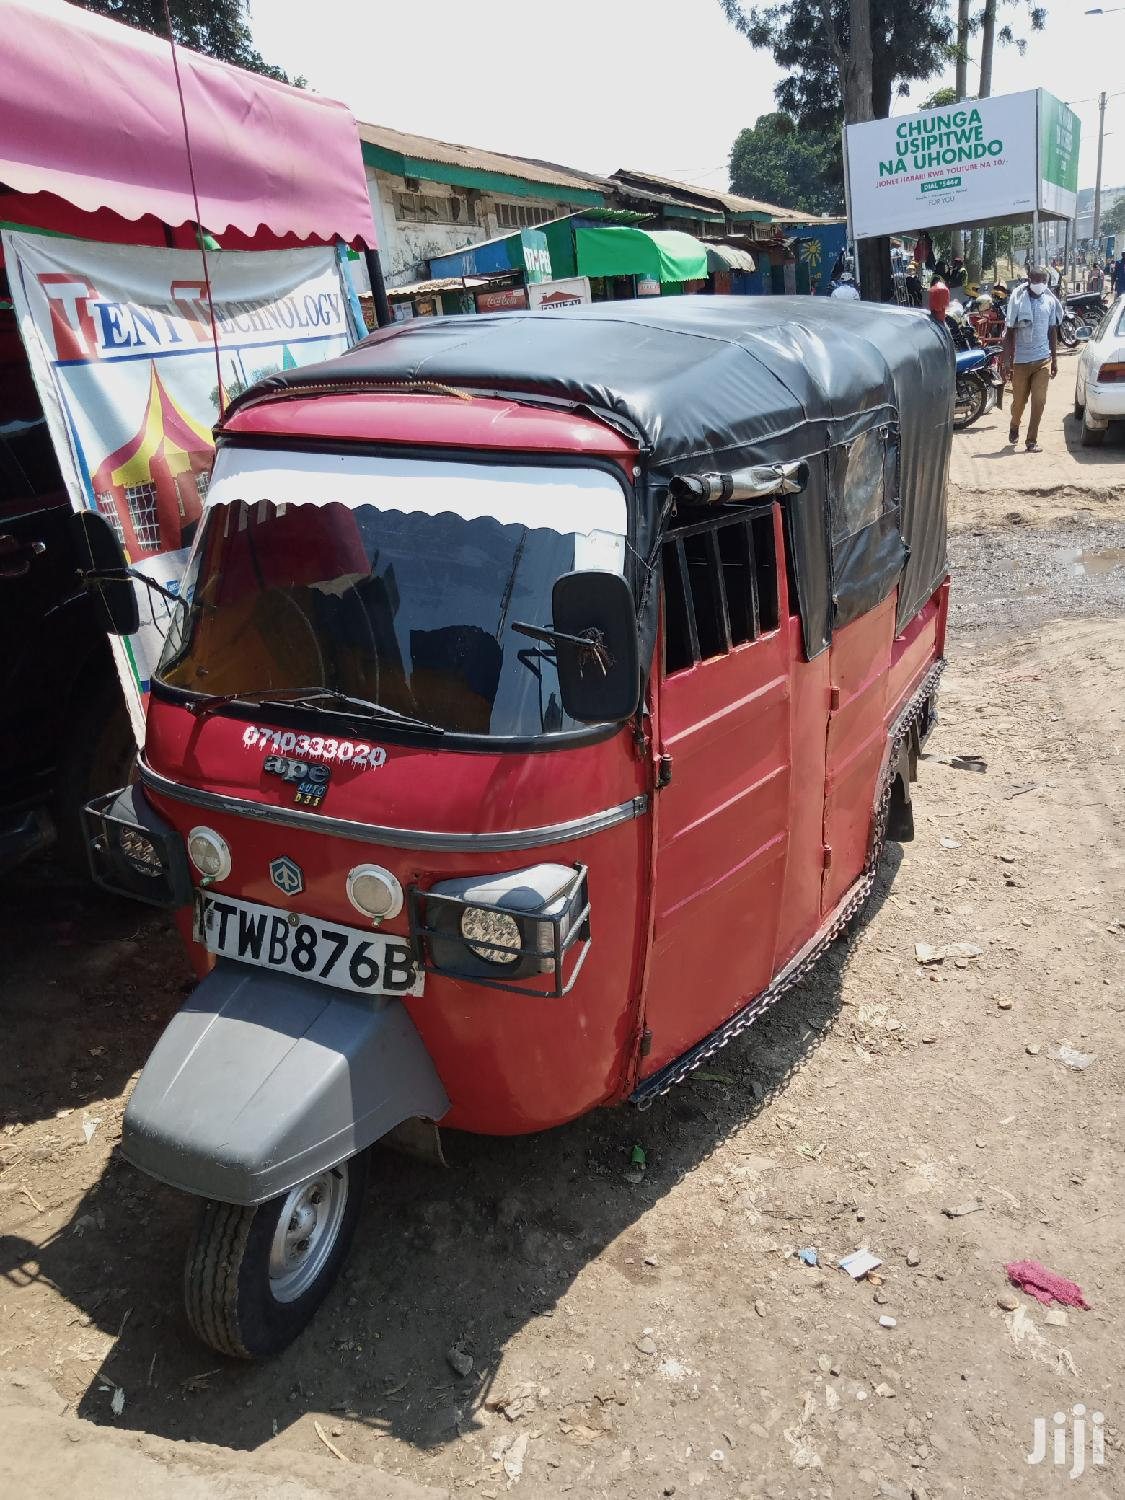 Piaggio Scooter 2017 Red | Motorcycles & Scooters for sale in Ngara, Nairobi, Kenya